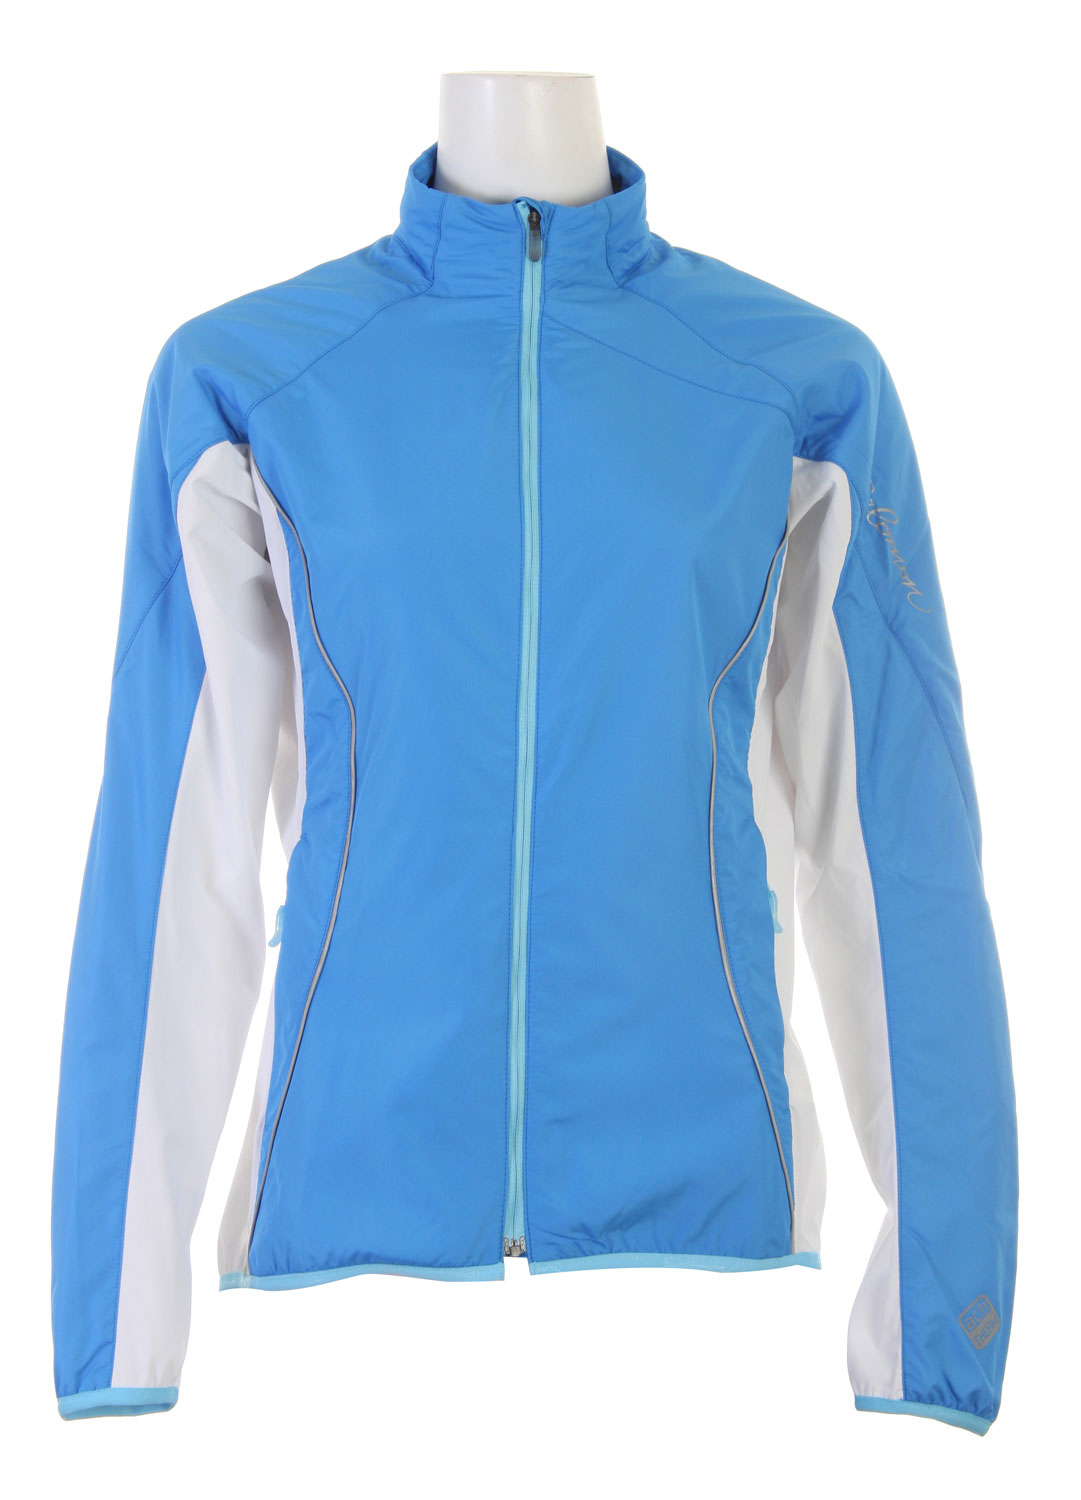 Ski This jacket provides light insulation, great breathability and motion-friendly fit for winter Nordic skiing.Key Features of the Salomon Superfast Ski Jacket: SMART SKIN actiTHERM stretch poly knit ClimaWIND Teflon taffeta 2 zipped pockets Reflective branding front & back Slim fit - $68.95